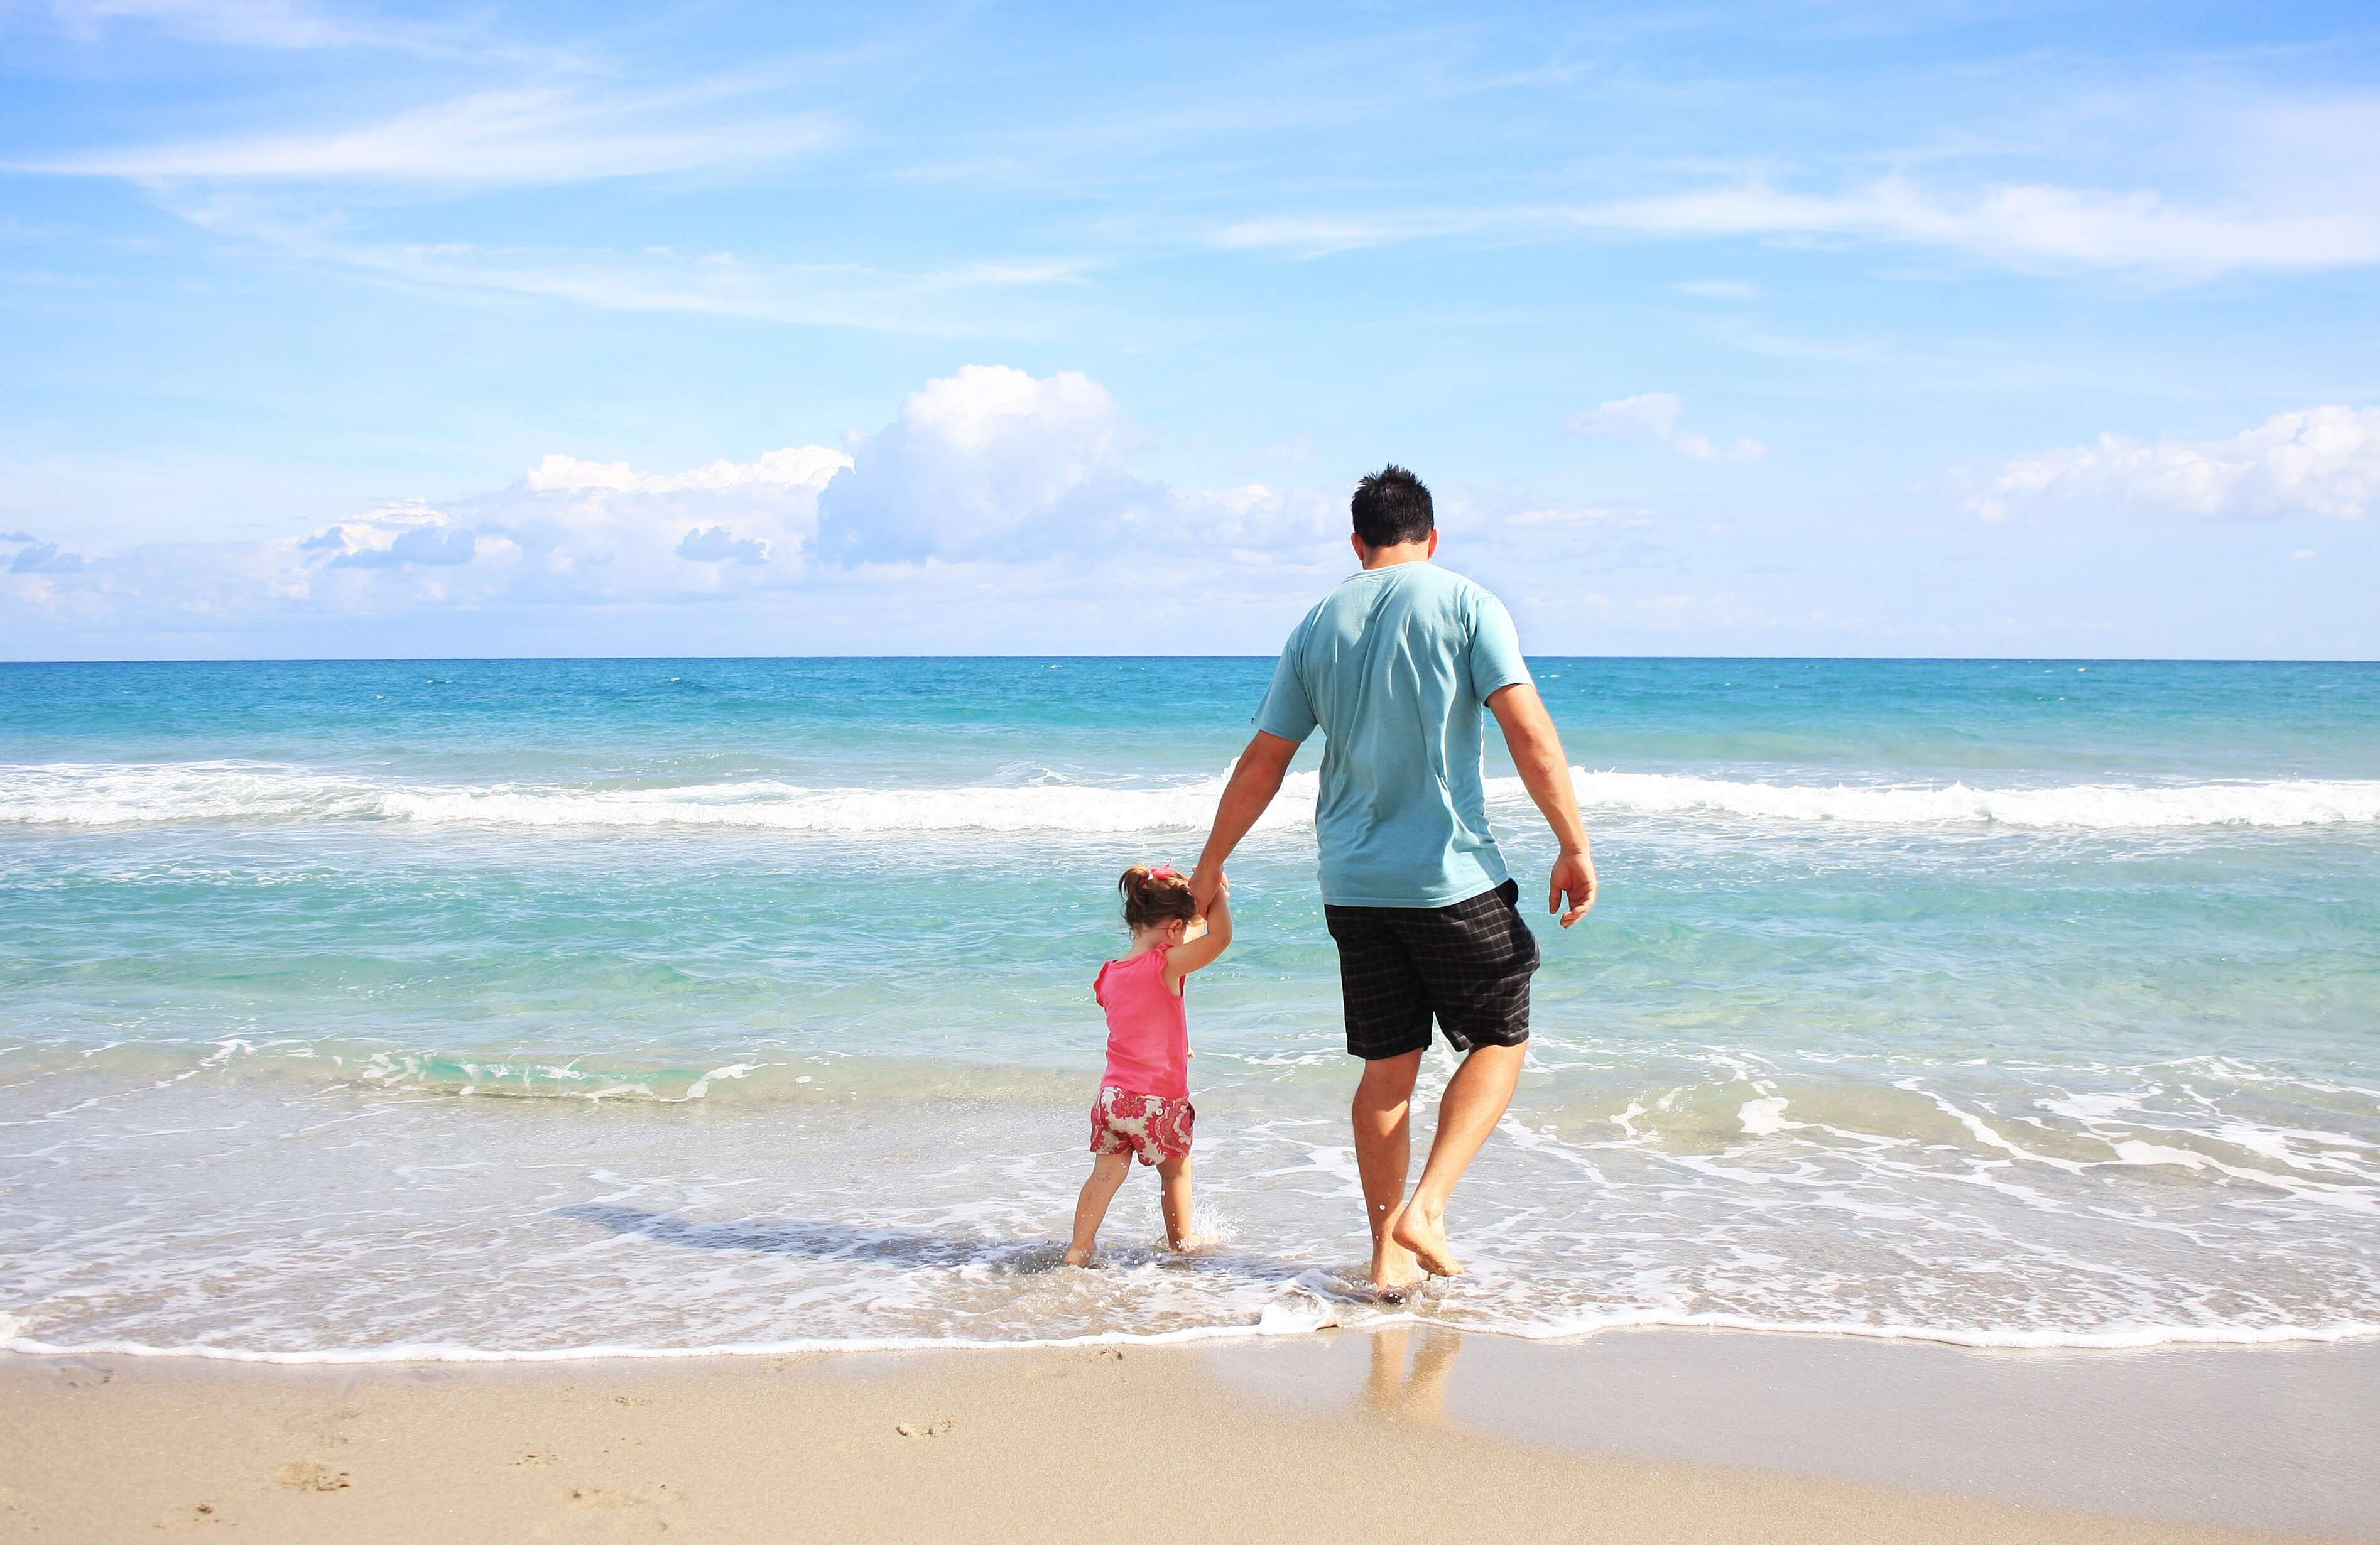 father and daughter at the beach, activities for last days of summer